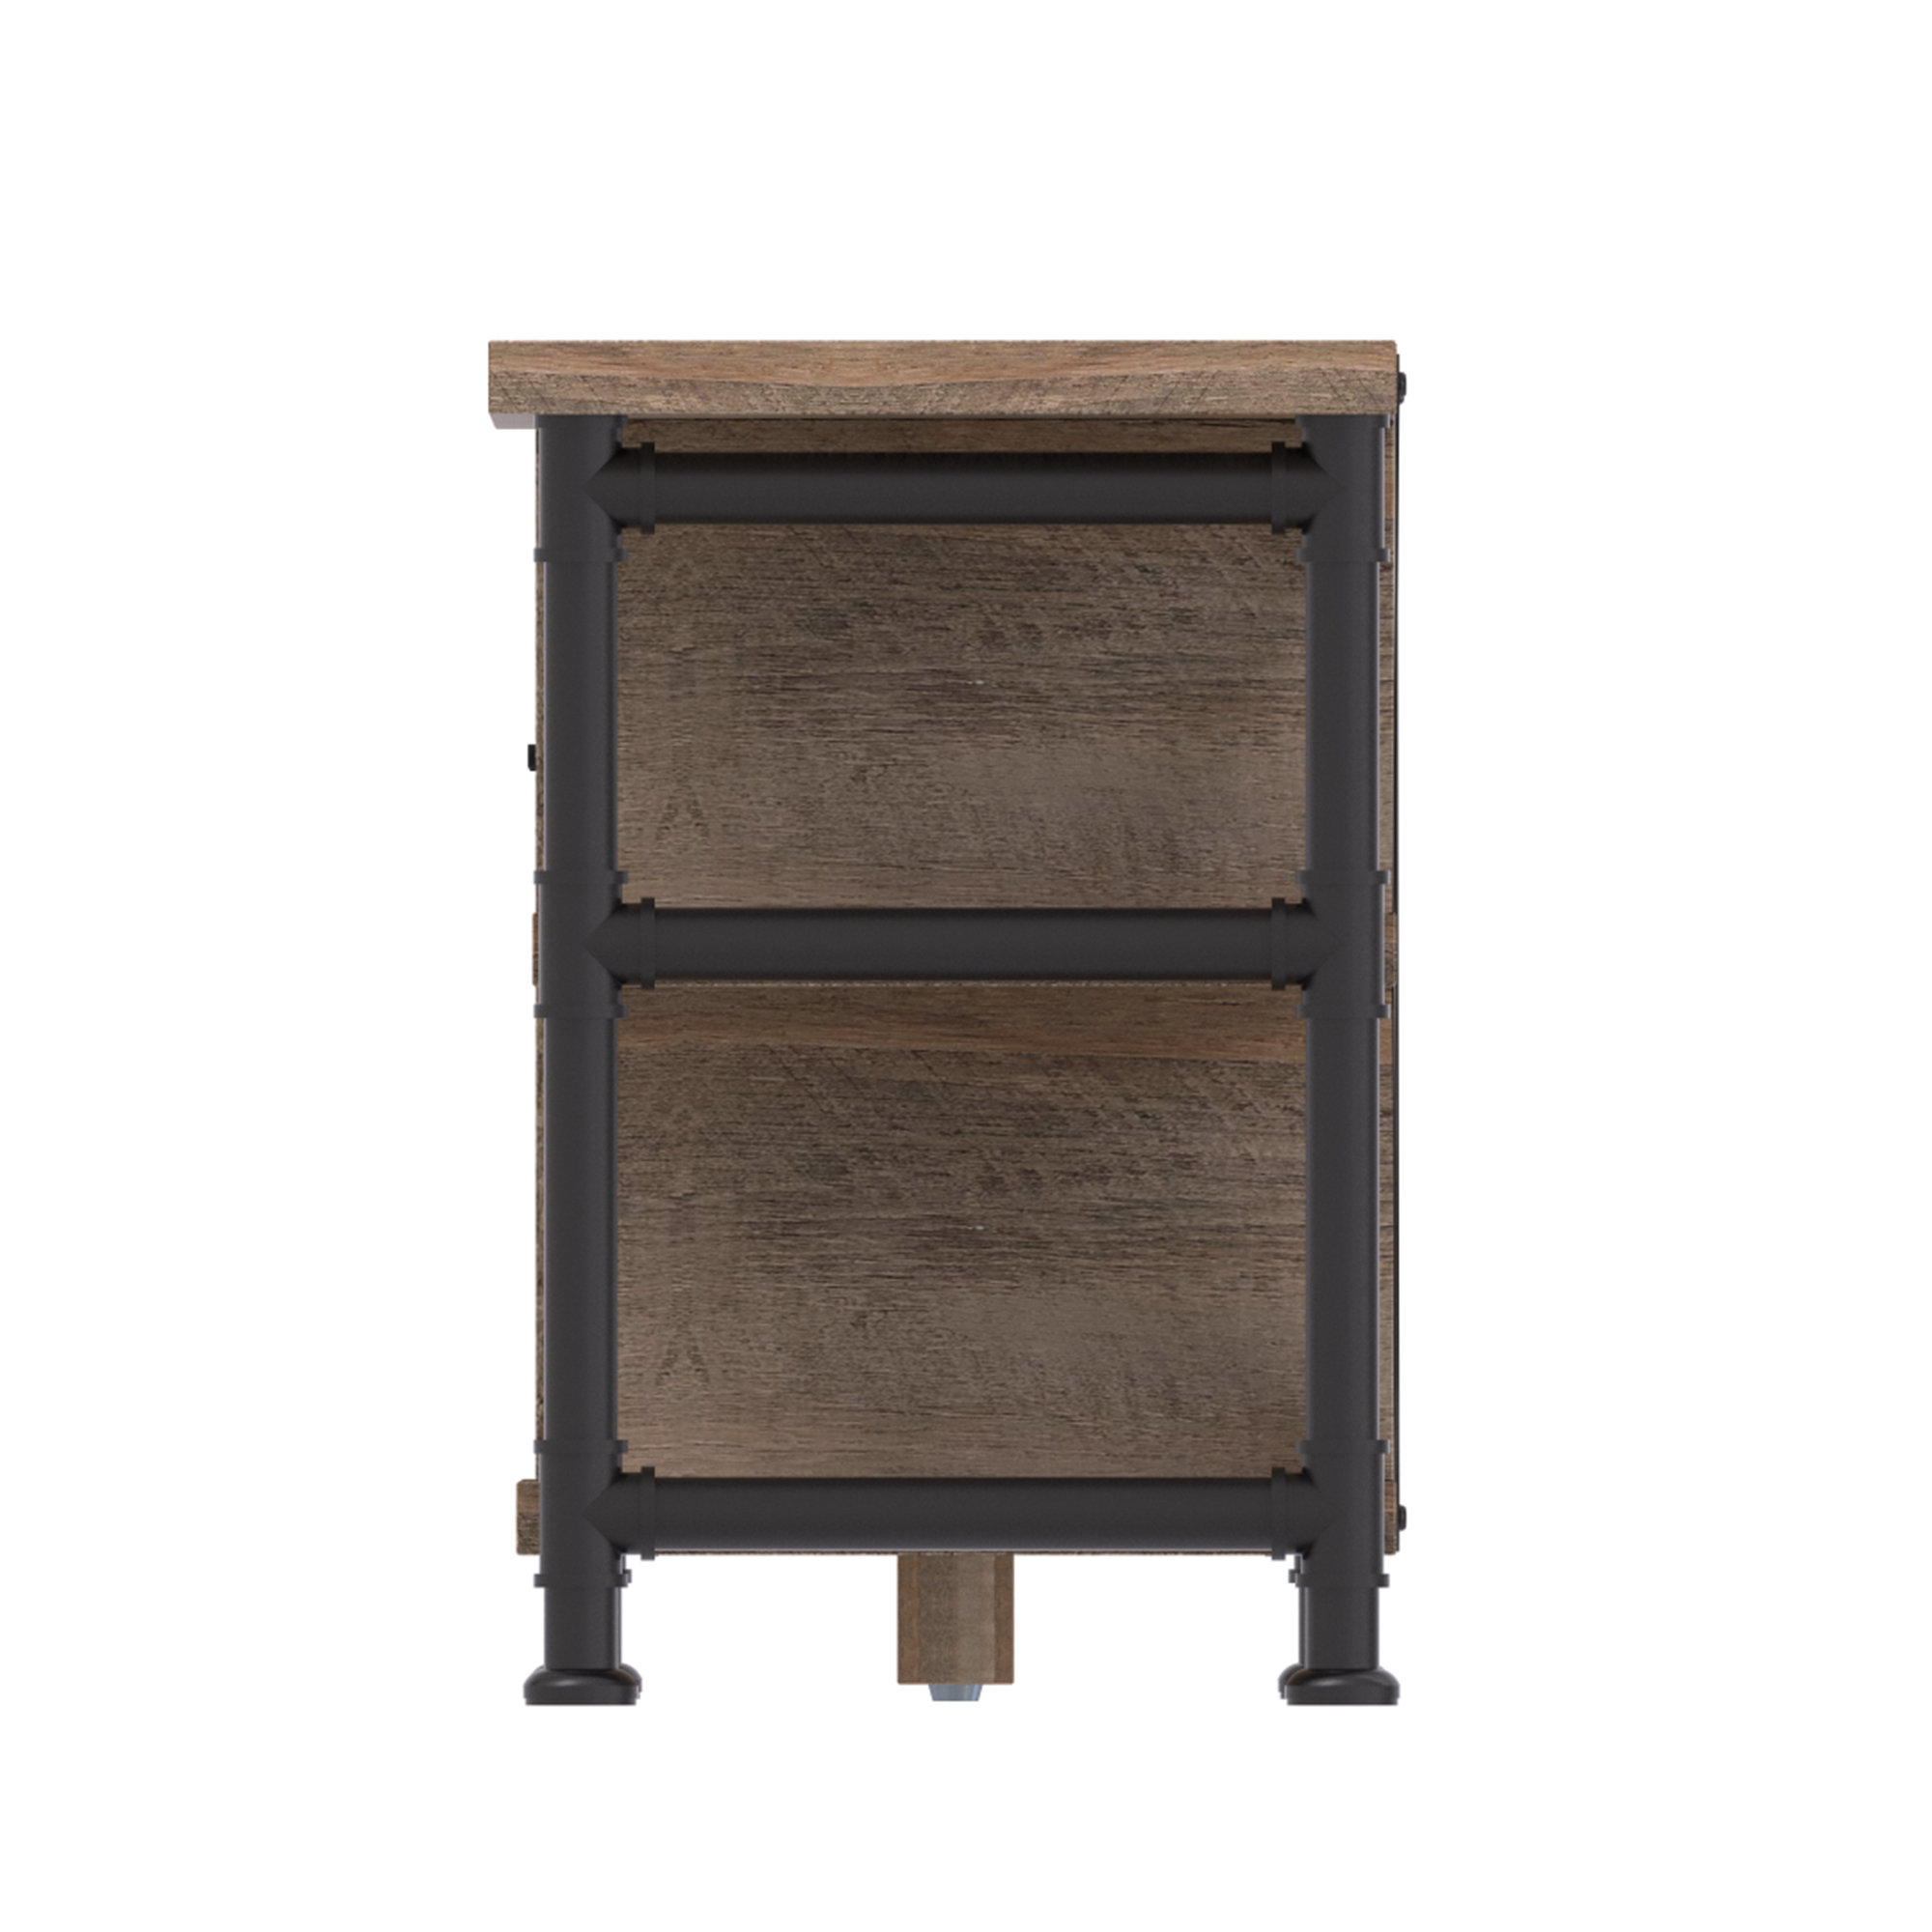 Rustic Tv Stand Fireplaces You'll Love | Wayfair (View 10 of 20)